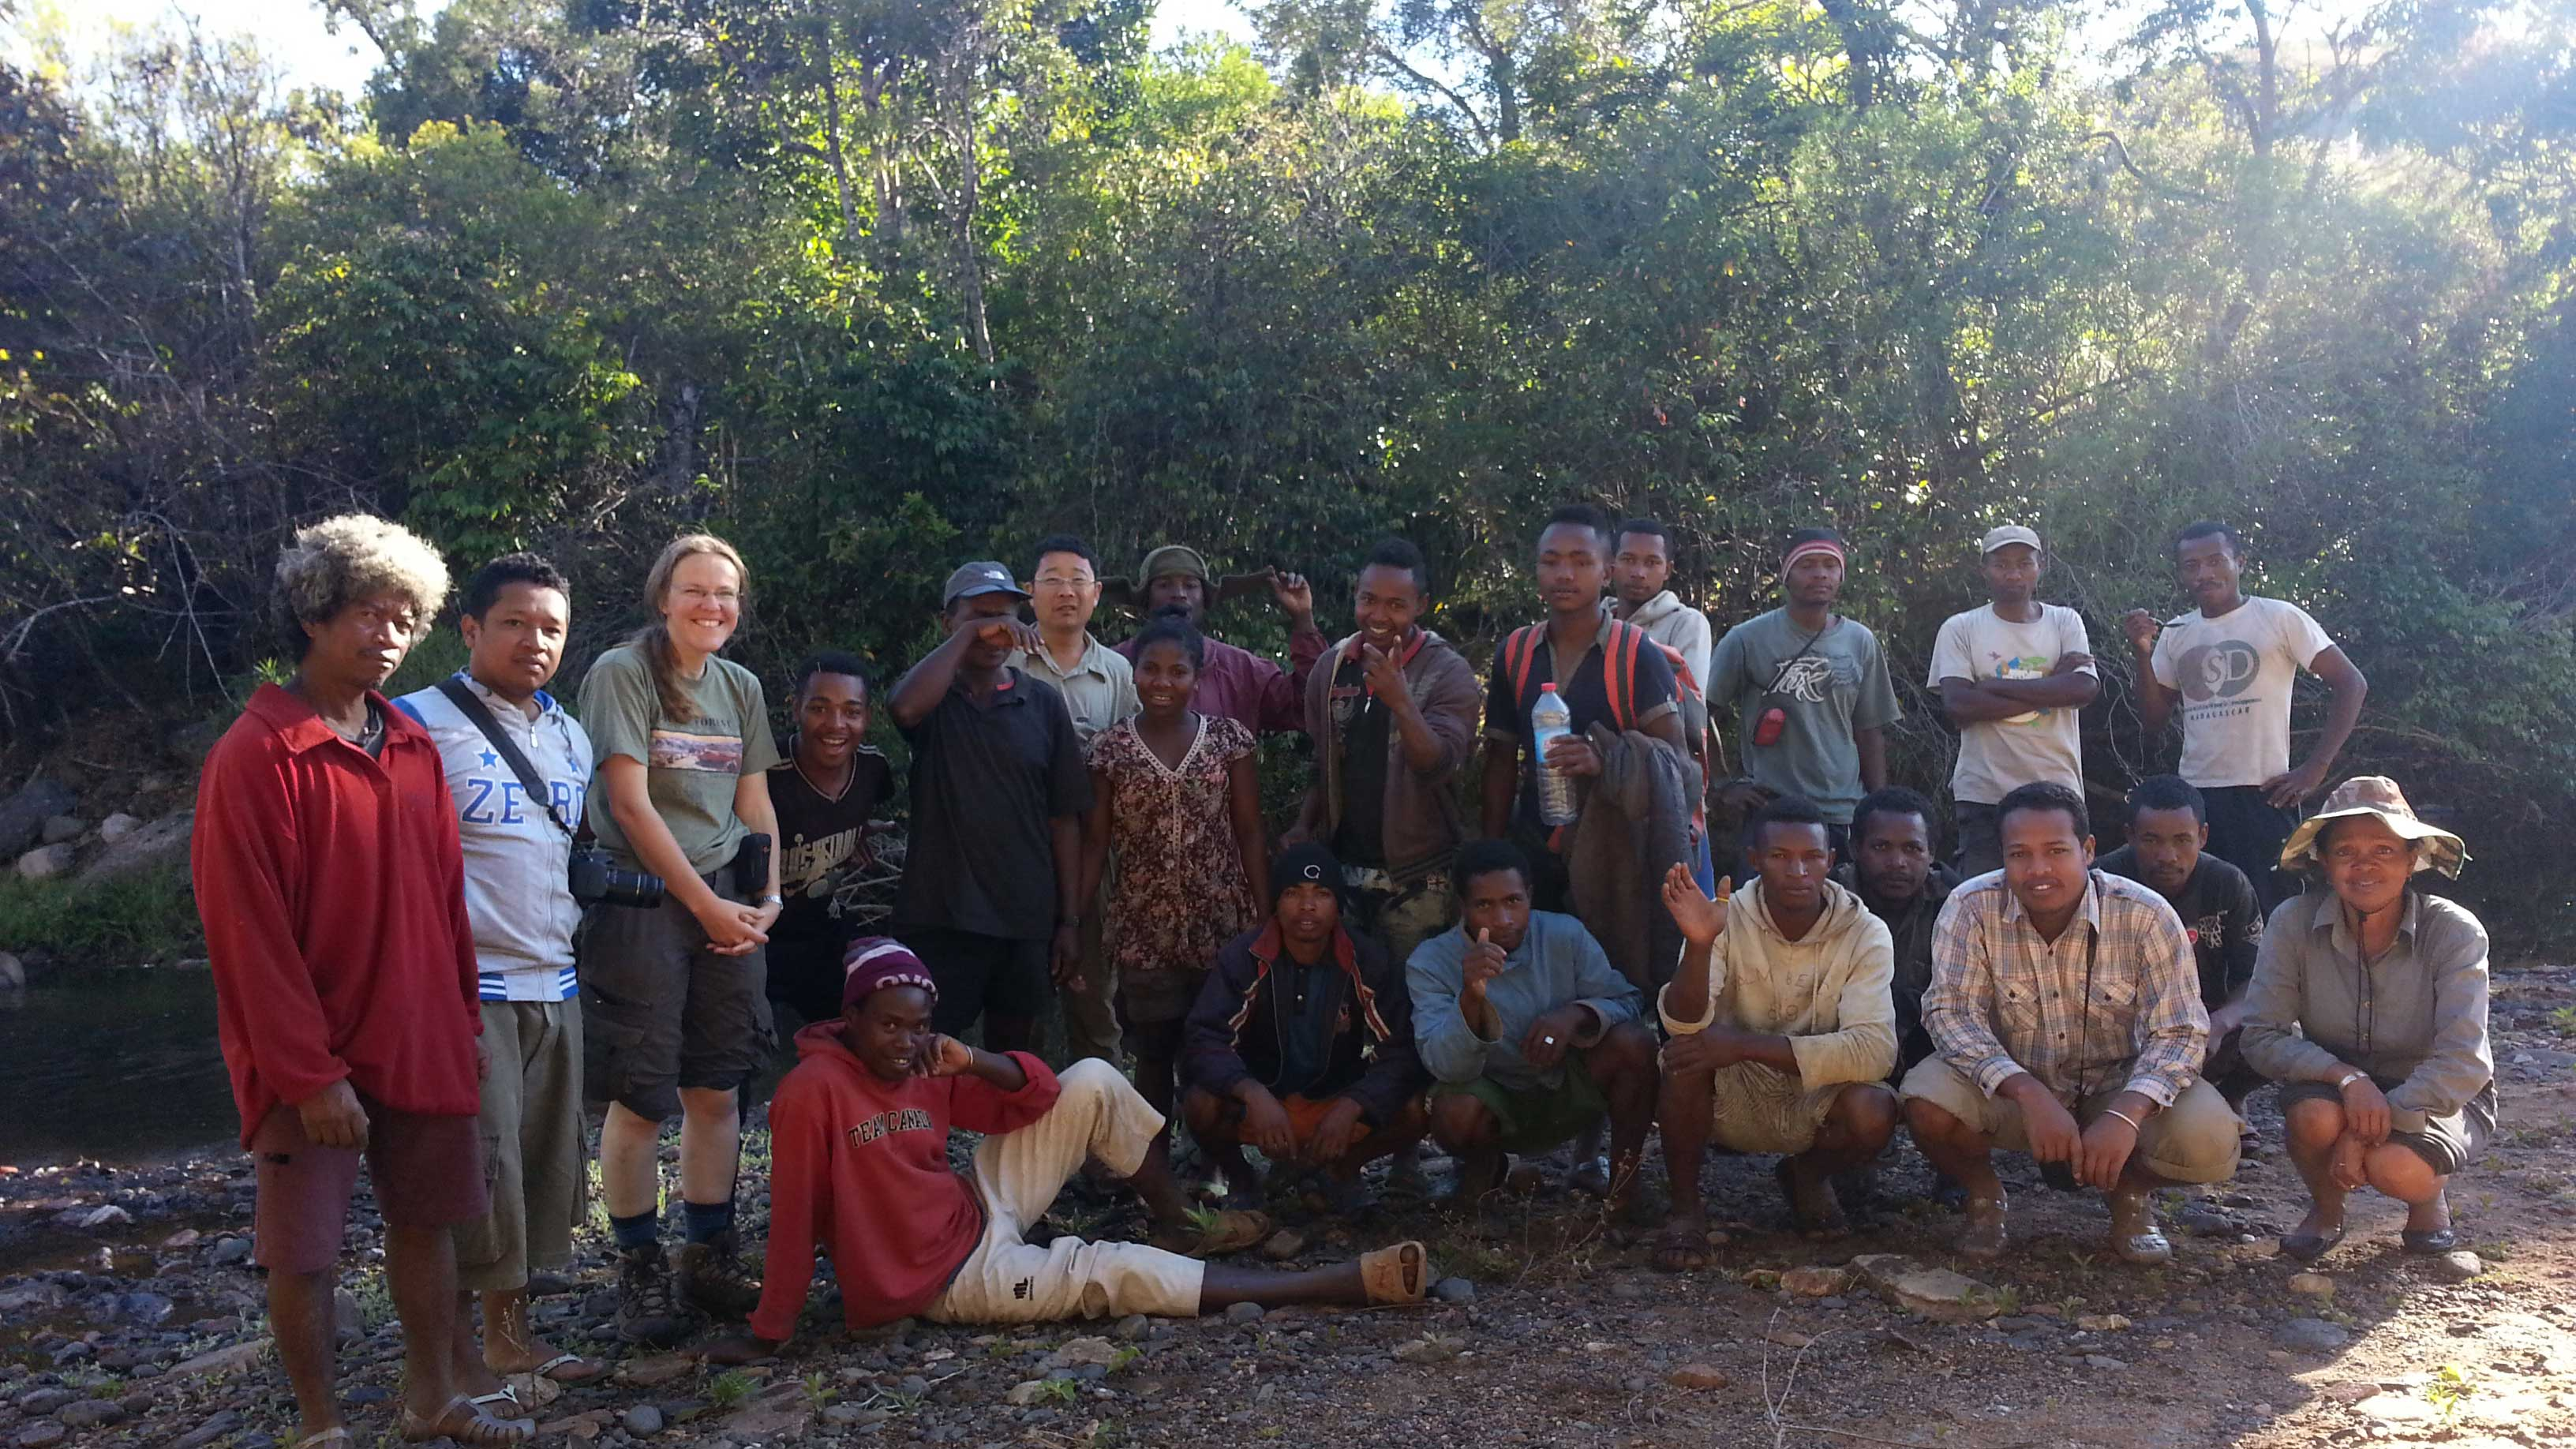 Image showing Tsaratanana bamboo team: 13 porters, 7 botanists, 2 guides, 1 Head Porter, and 1 cook